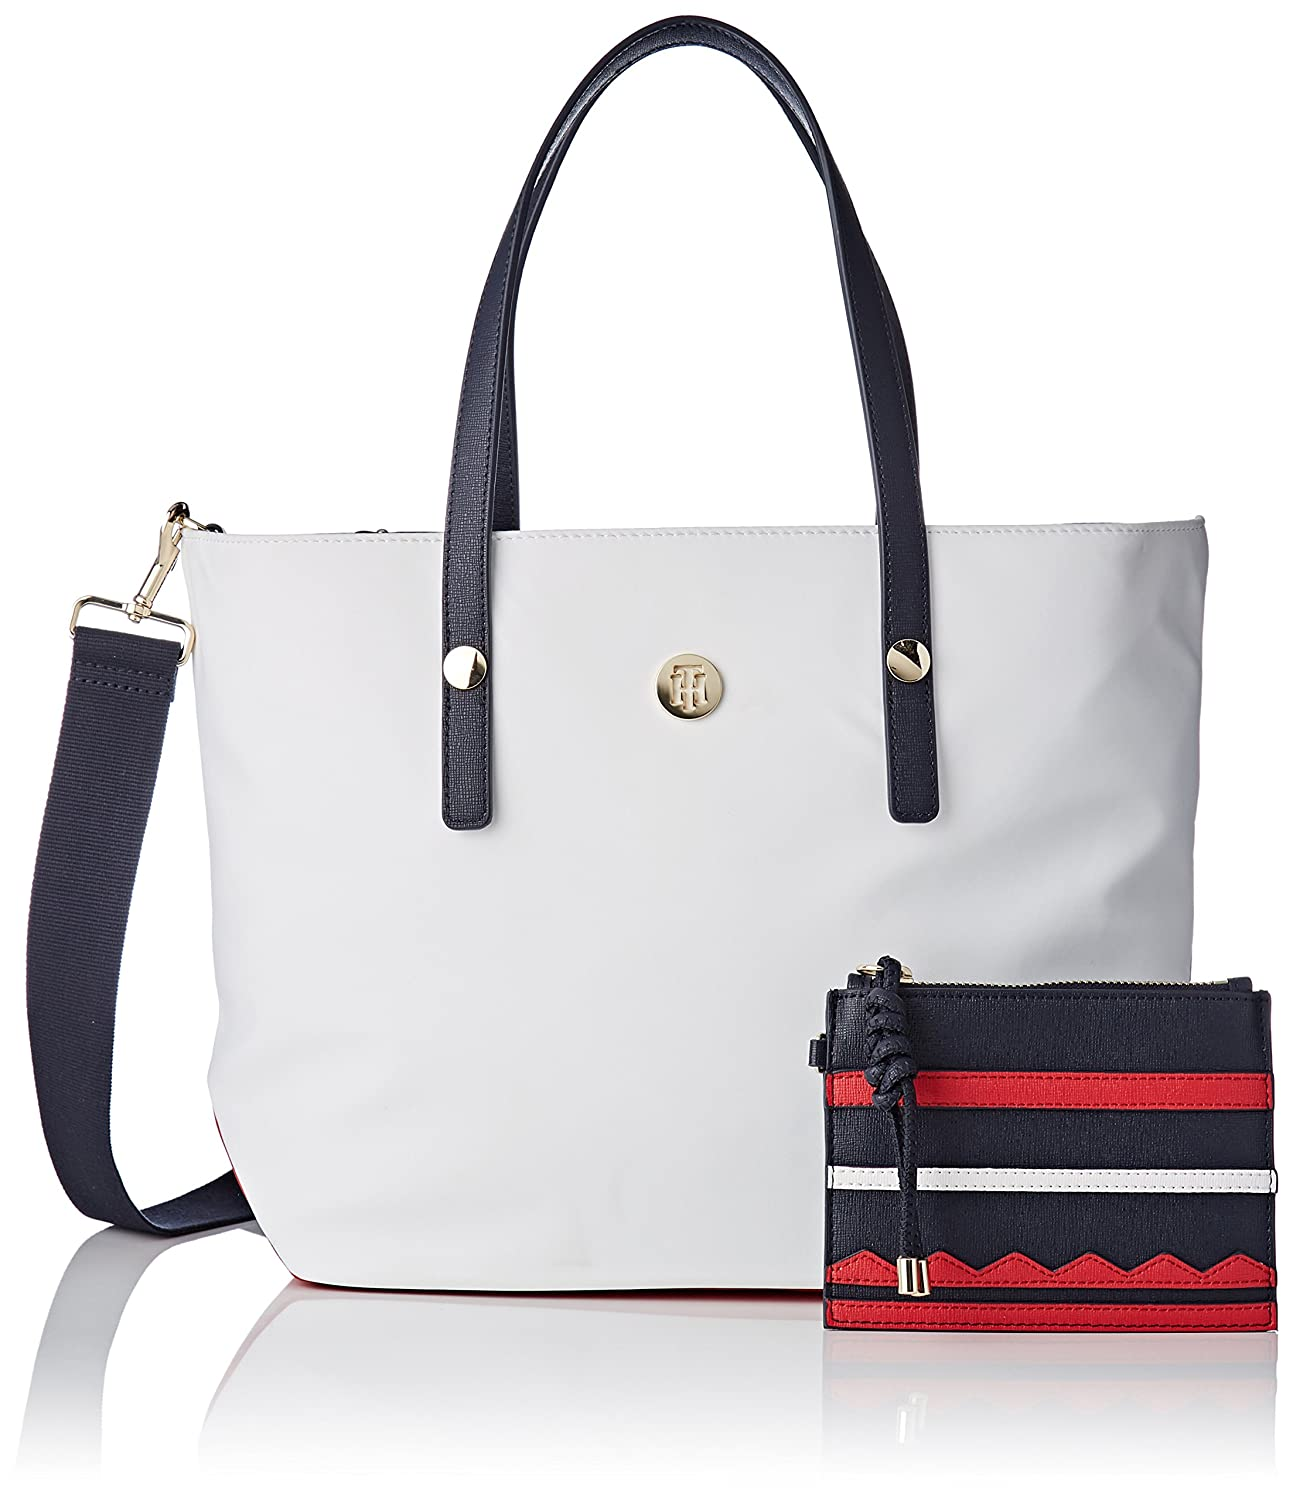 Tommy Hilfiger Tommy City Med Tote Nylon, Sacs portés épaule Sacs portés épaule femme Bleu (Corporate Cb) 11.4x27.5x27.5 cm (B x H T) AW0AW05452